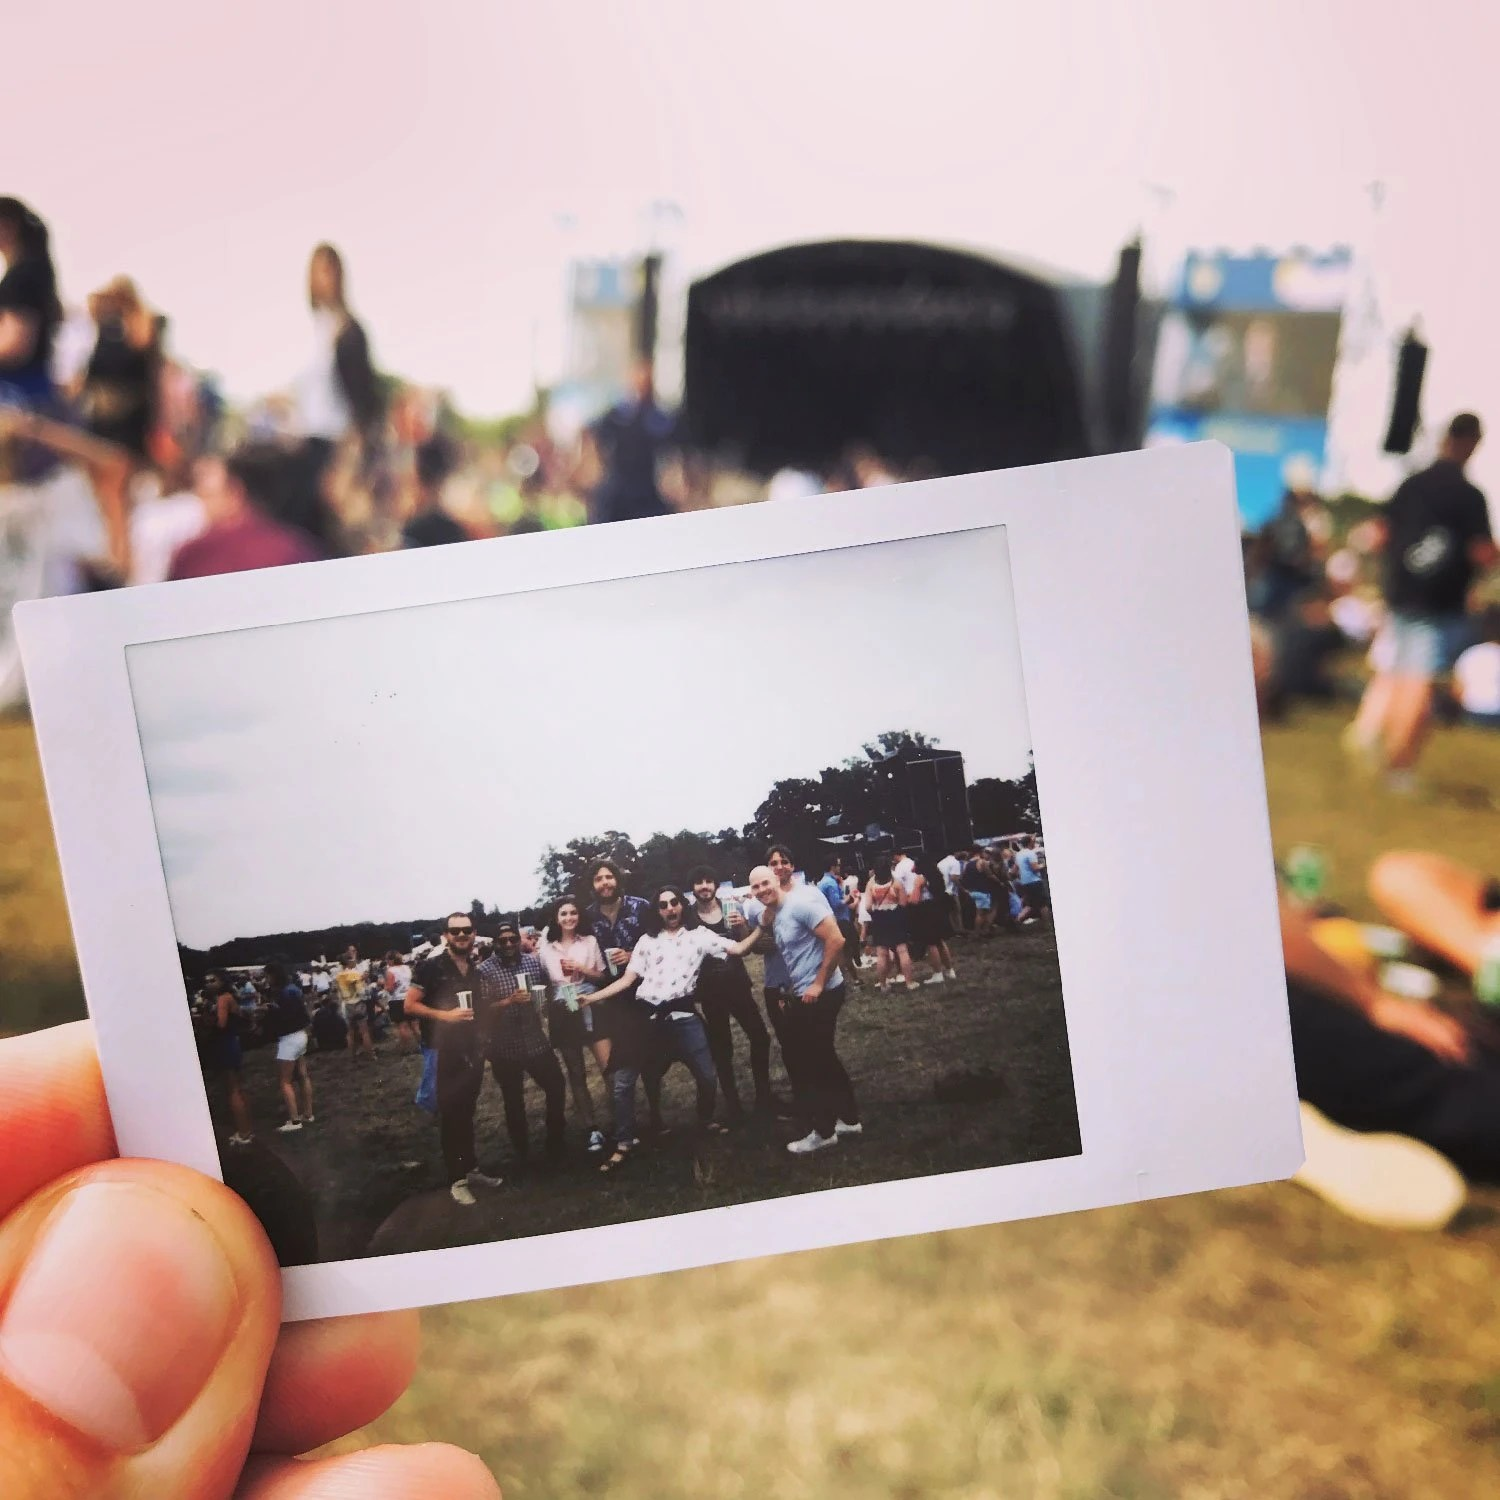 6rs team at rise festival on a polaroid photo